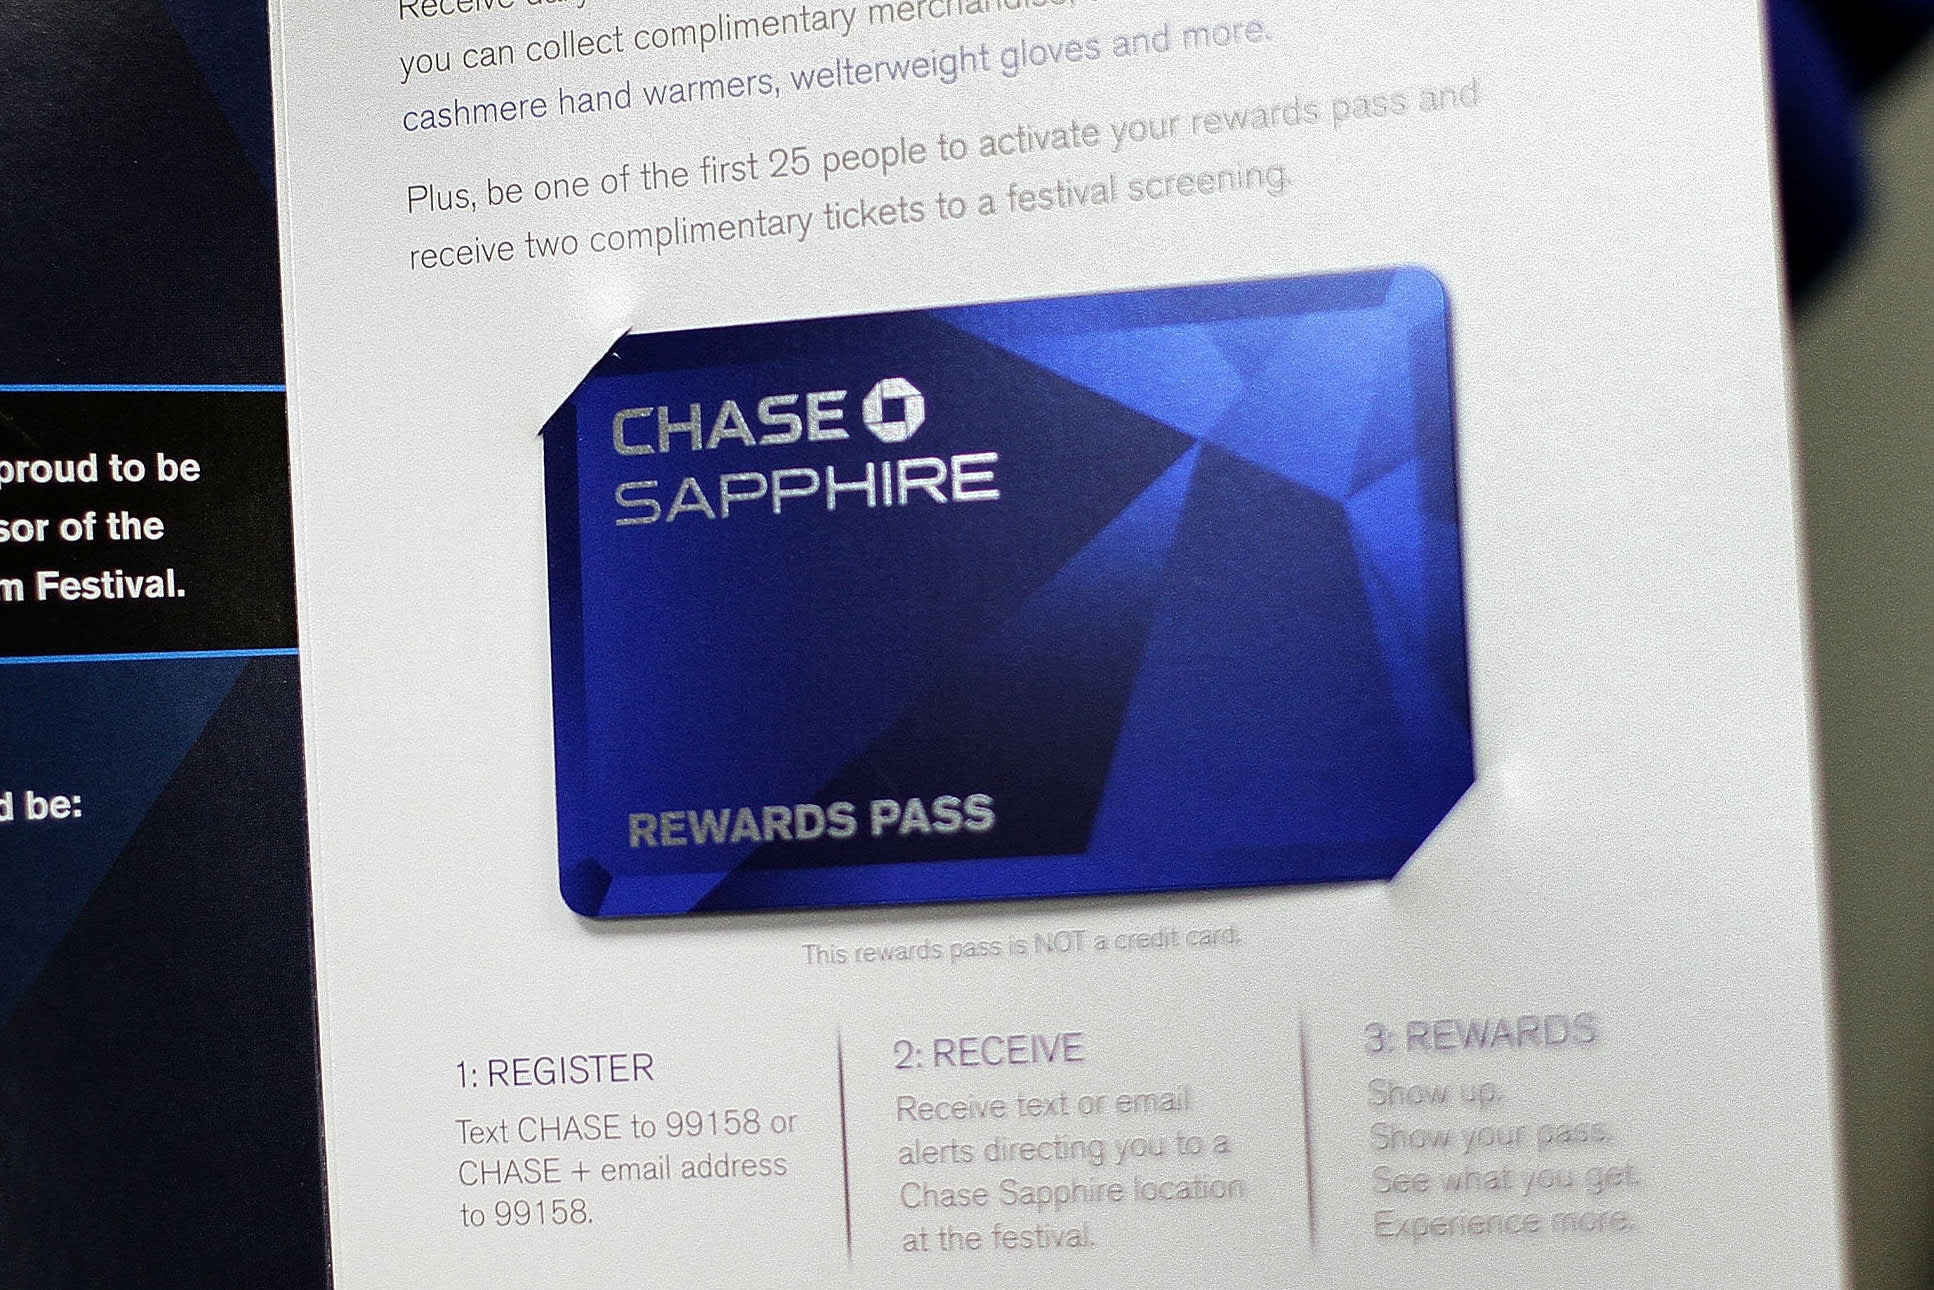 JP Morgan bets that Sapphire card fans will sign up for bank